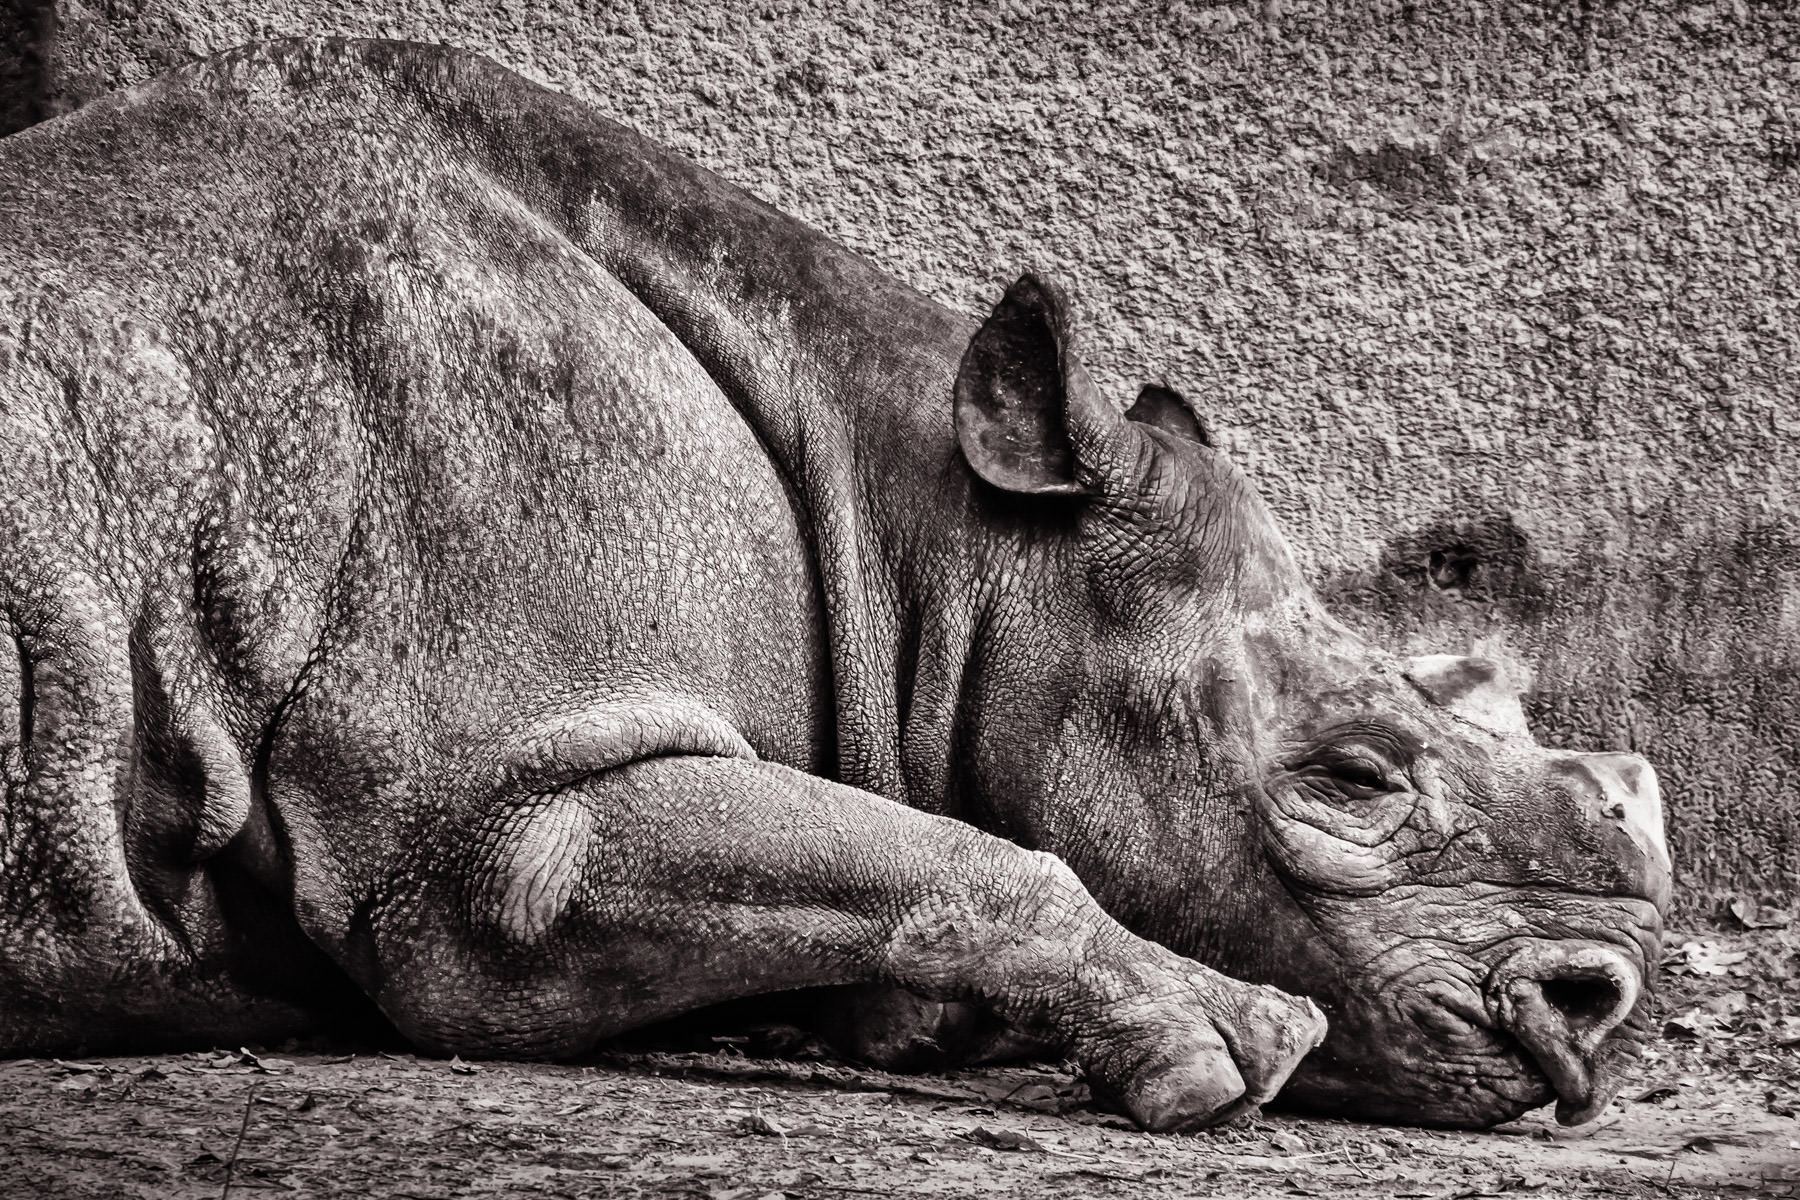 A rhinoceros sleeps in his habitat at Tyler, Texas' Caldwell Zoo.